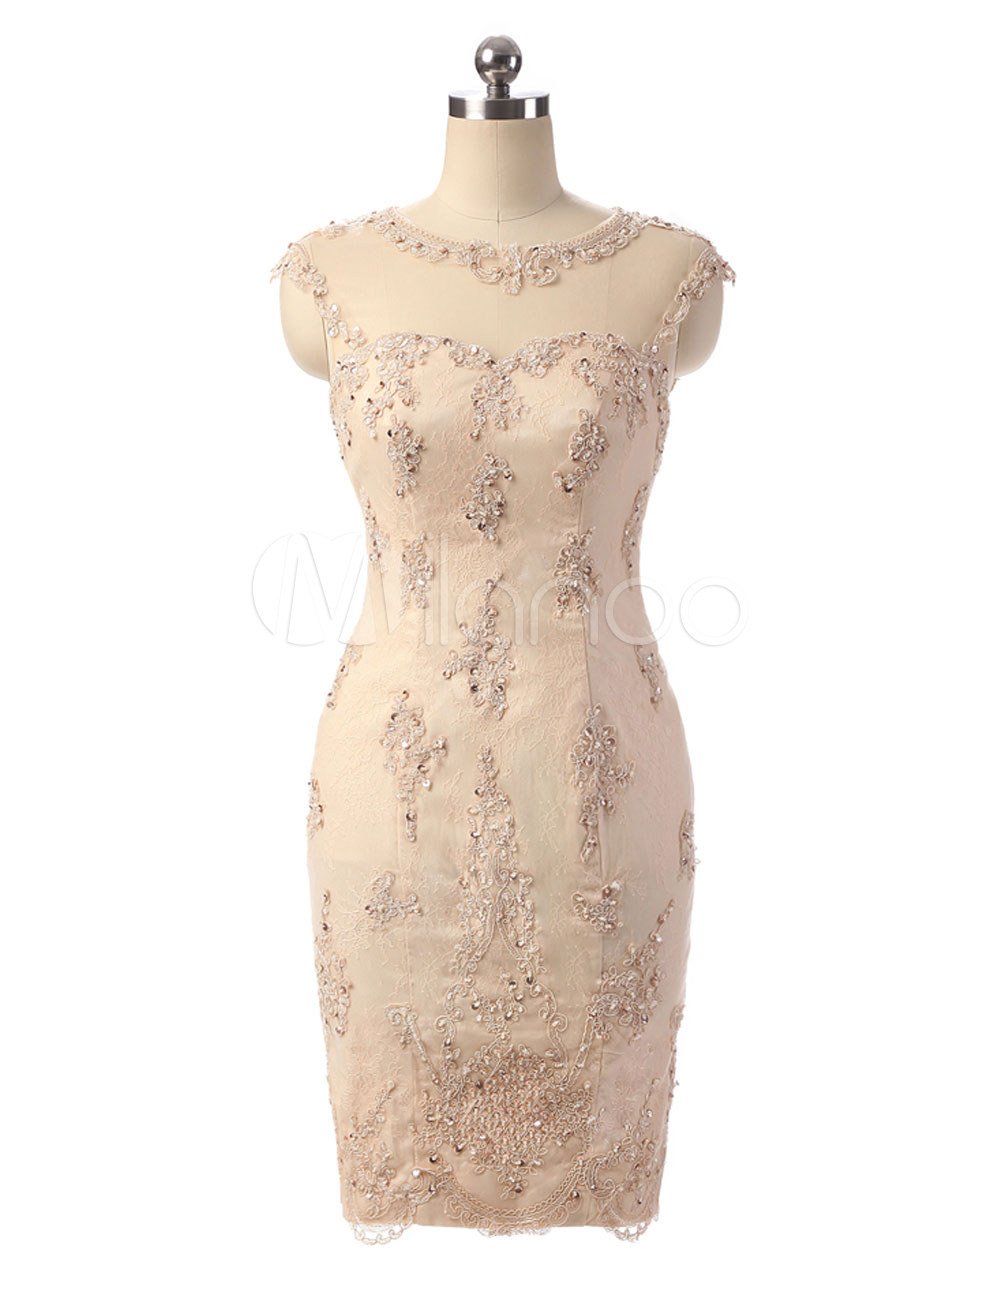 Buy Short Mother Dress Lace Sheath Cocktail Dress Champagne Illusion Sweetheart Beading Sequin Cutout Back Knee Length Party Dress for $201.59 in Milanoo store